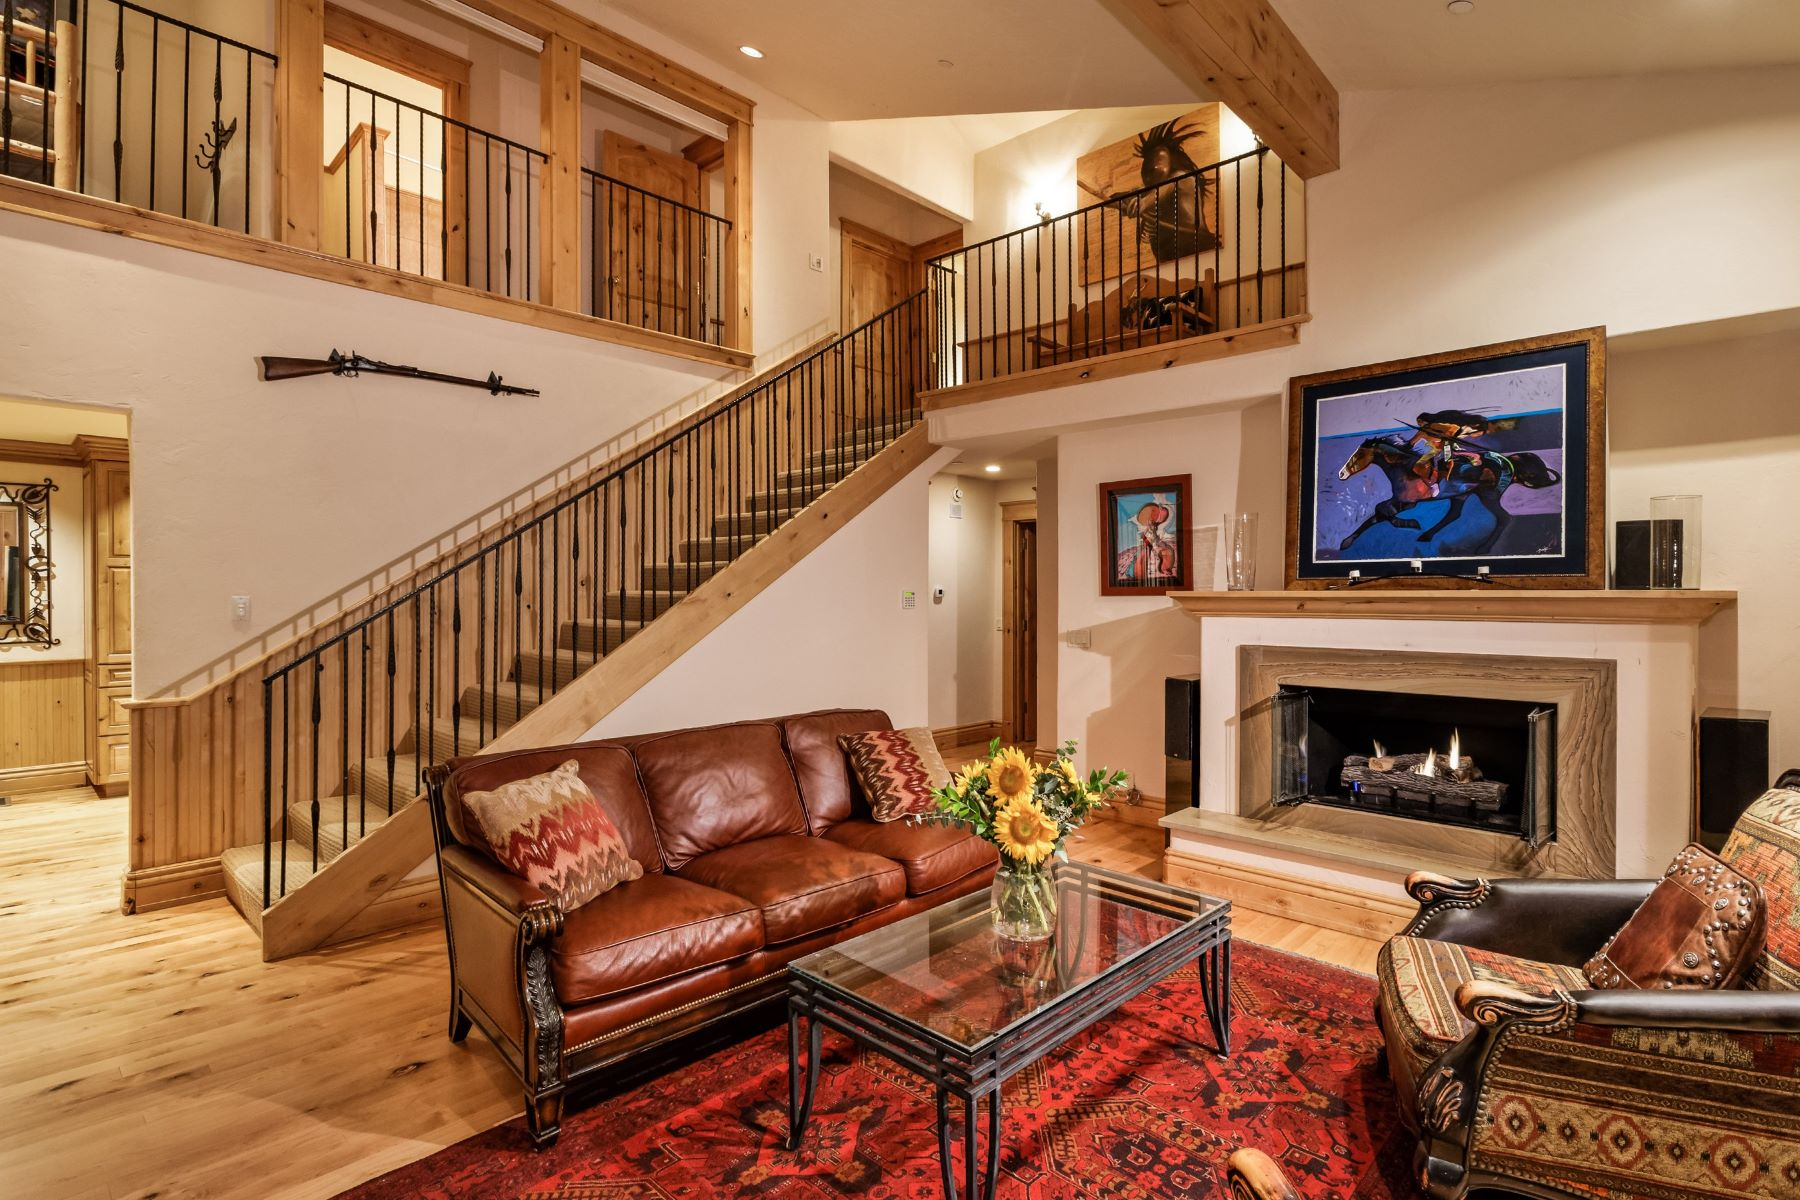 Single Family Home for Sale at Pitkin Mesa Duplex 33 Pitkin Mesa Drive Aspen, Colorado, 81611 United States